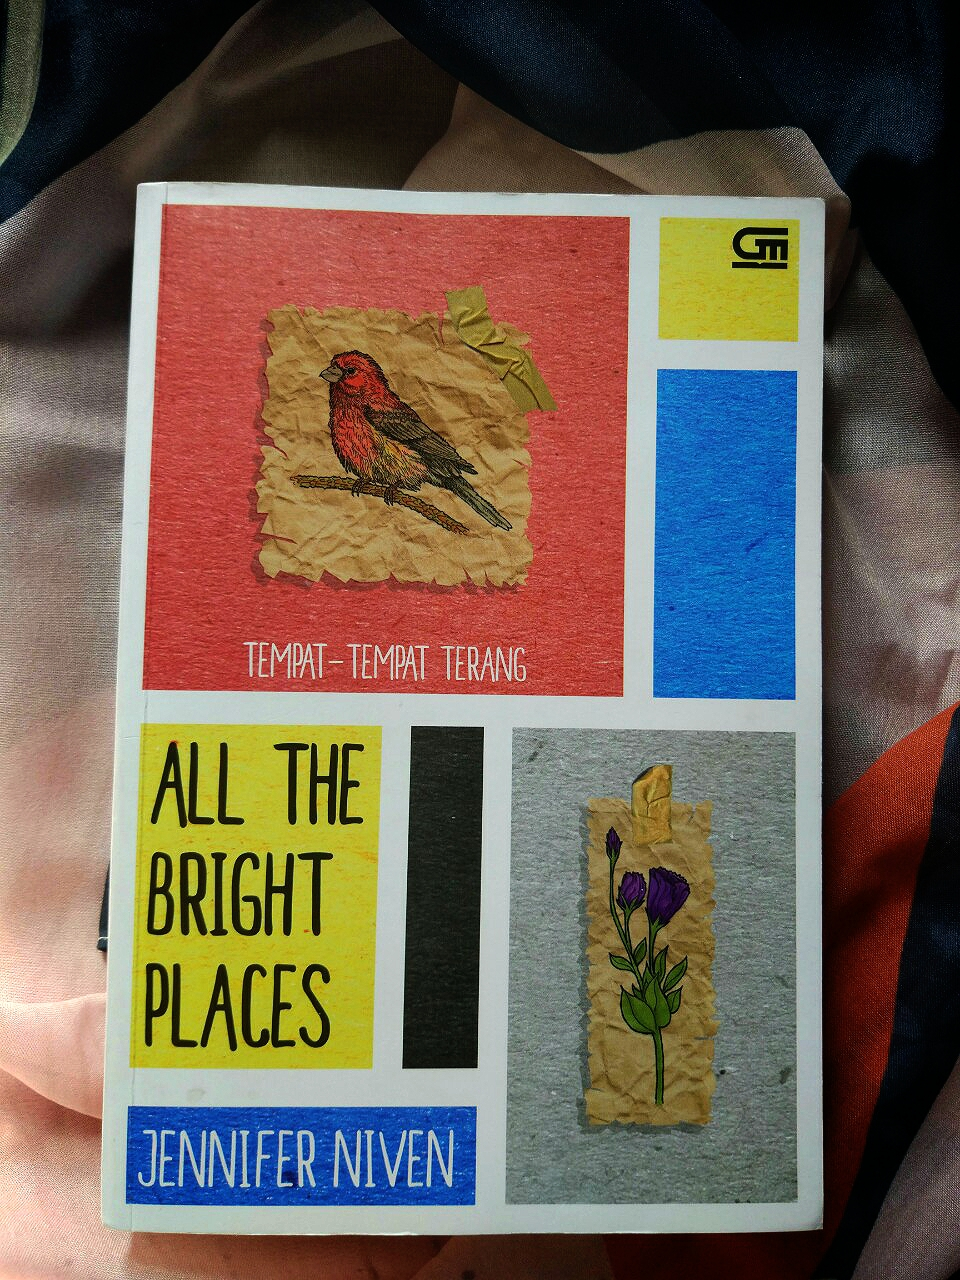 Sinopsis All The Bright Places : sinopsis, bright, places, Review, Bright, Places, (Tempat, Tempat, Terang), Jennifer, Niven